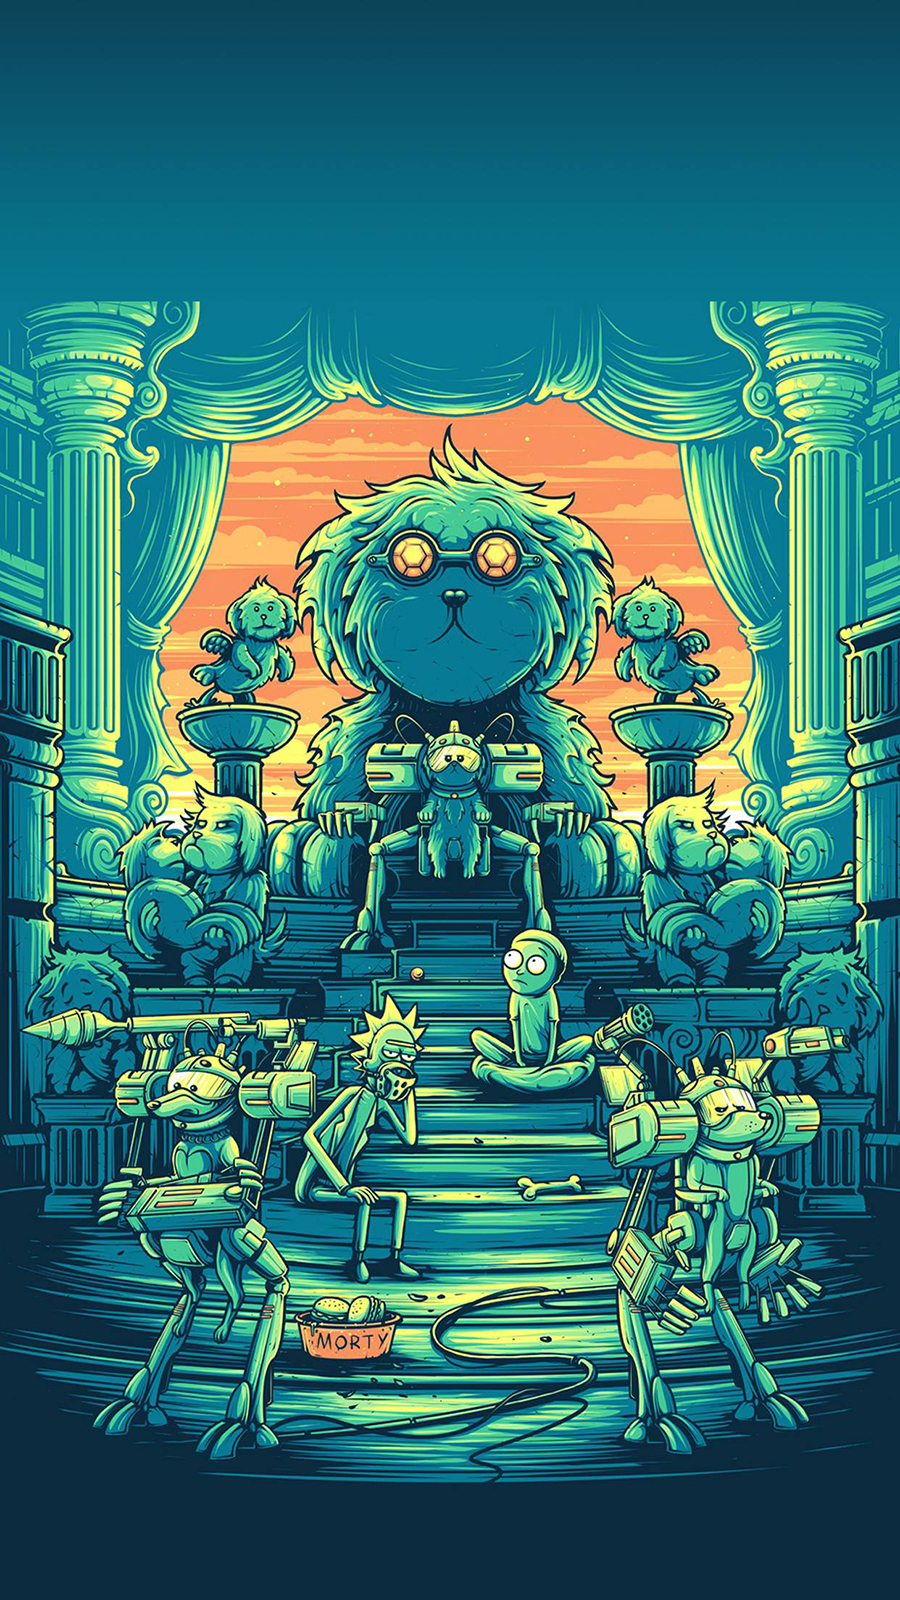 Rick & Morty Art Wallpapers Now Download For Your Device